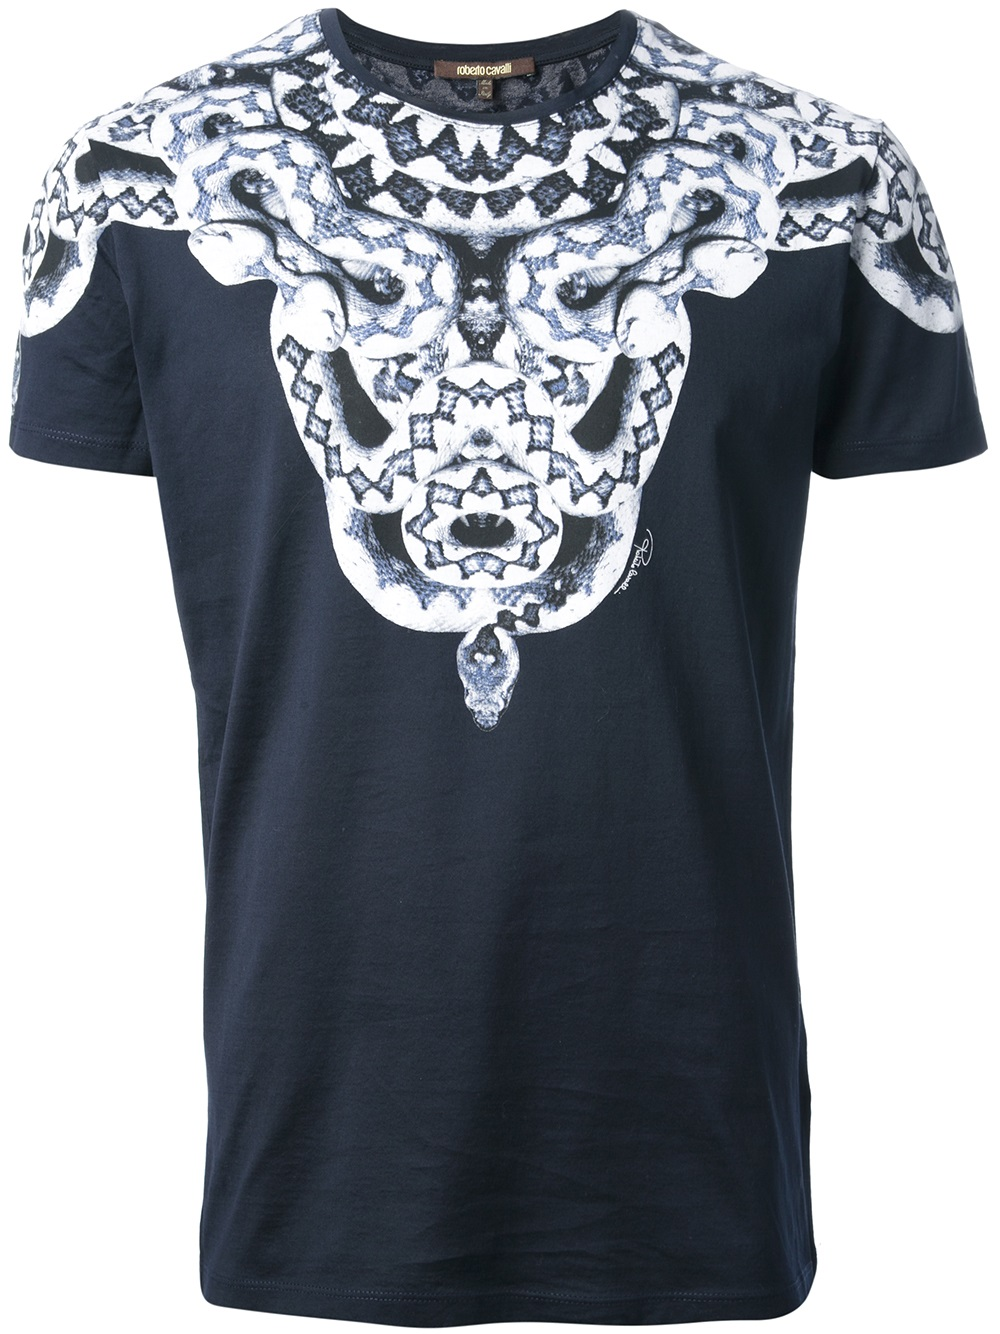 YOOX: shop T-Shirts And Tops by Roberto Cavalli online. For you, an wide array of products: easy, quick returns and secure payment!